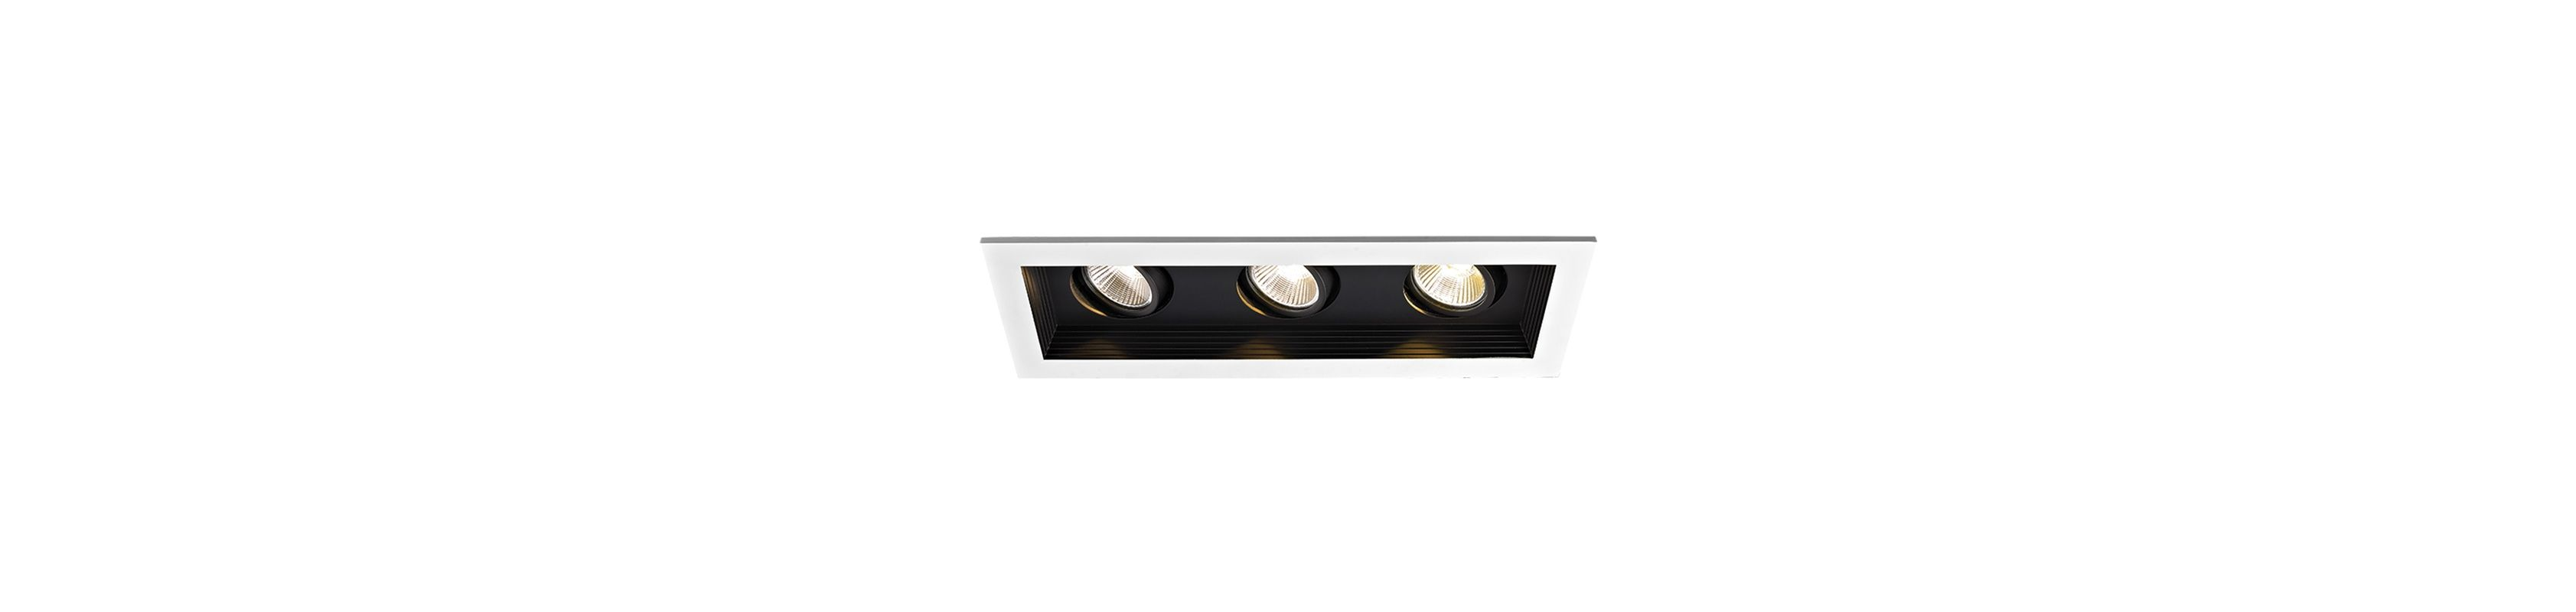 "WAC Lighting MT-3LD311NA-F30 New Construction 1 Light Mini LED Sale $540.00 ITEM: bci2426776 ID#:MT-3LD311NA-F30-BK UPC: 790576290089 Features: Complete unit with housing and trim Each light individually adjustable 30° Beam angle cutoff for reduced glare Lamping Technology: Fixture Output Efficiency: 68.64 Lumens per Watt LED - Light Emitting Diode: Highly efficient diodes produce little heat and have an extremely long lifespan. Specifications: Number of Bulbs: 1 Bulb Type: LED Bulb Included: Yes Watts Per Bulb: 33 Wattage: 33 Voltage: 120 Average Hours: 50000 Color Rendering Index (CRI): 85 Color Temperature: 3000K Height: 8.69"" Width: 17.88"" Depth: 5.13"" UL Listed: Yes :"